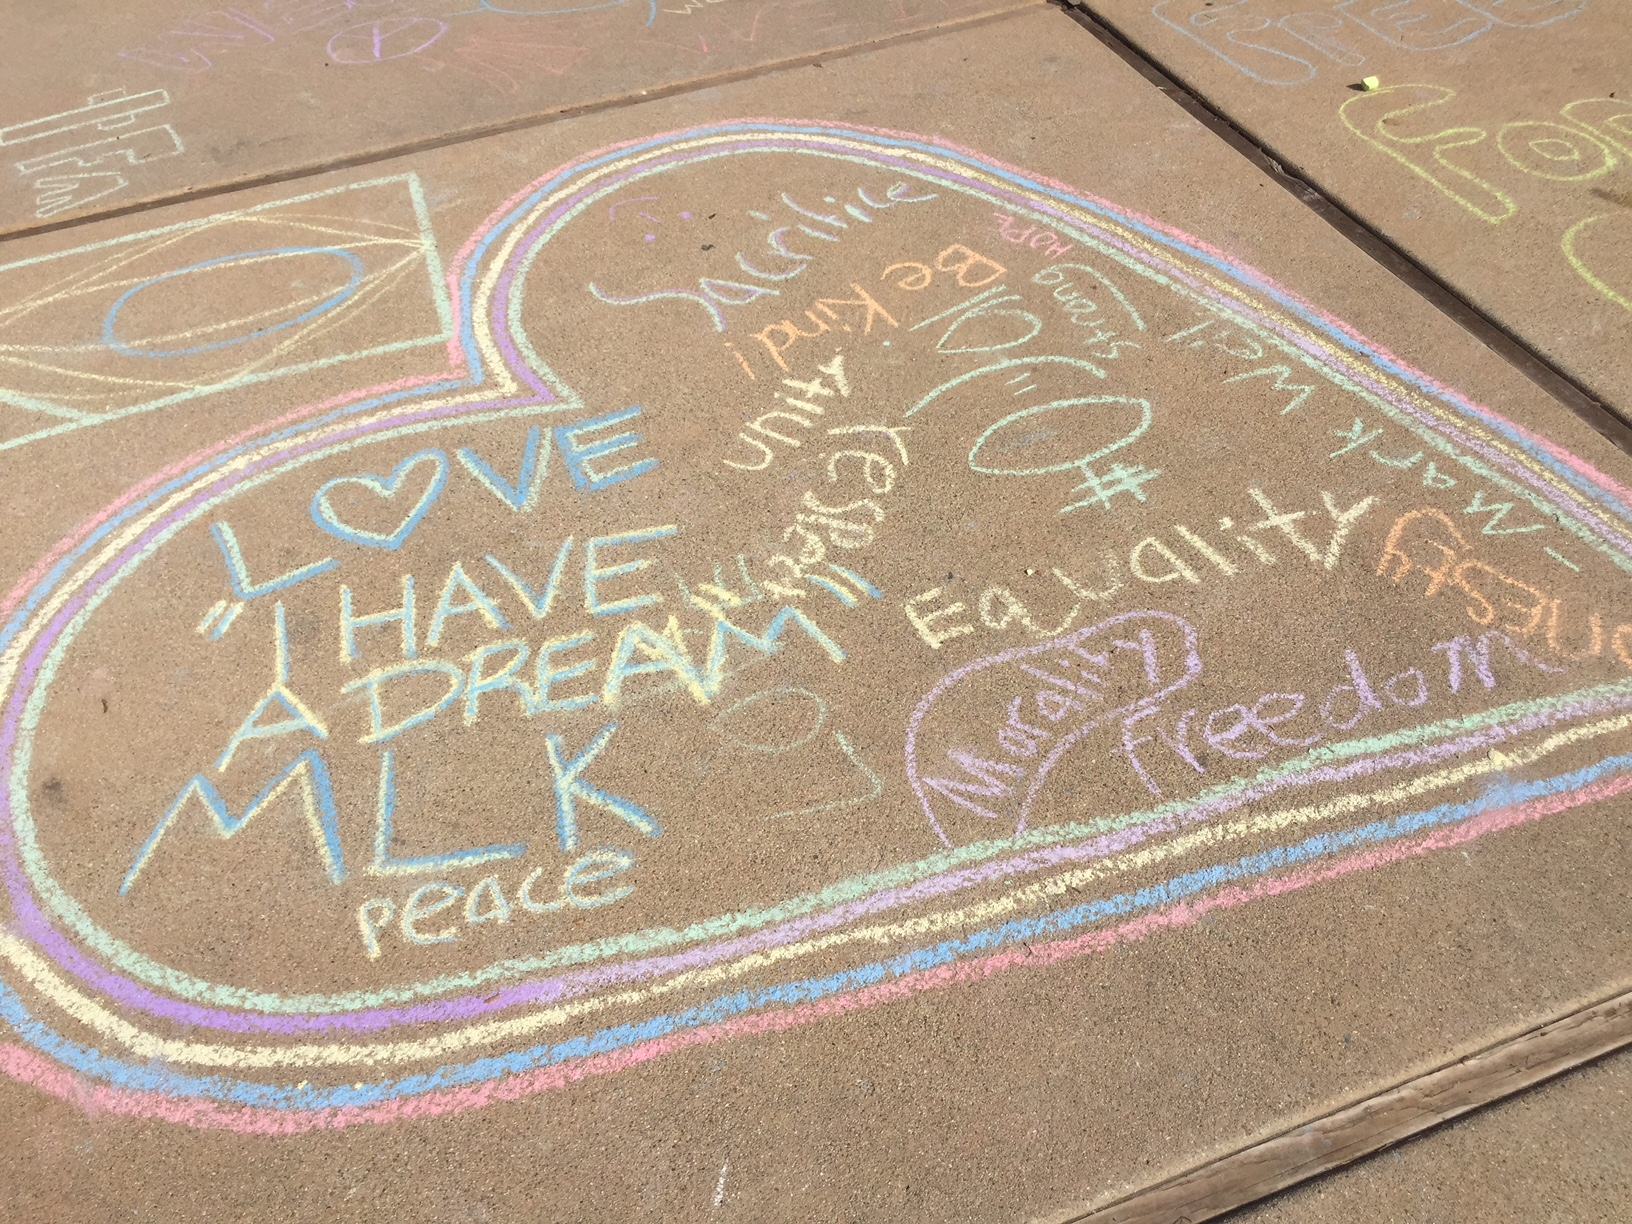 A team of artists from Nordhoff H.S. left this message...